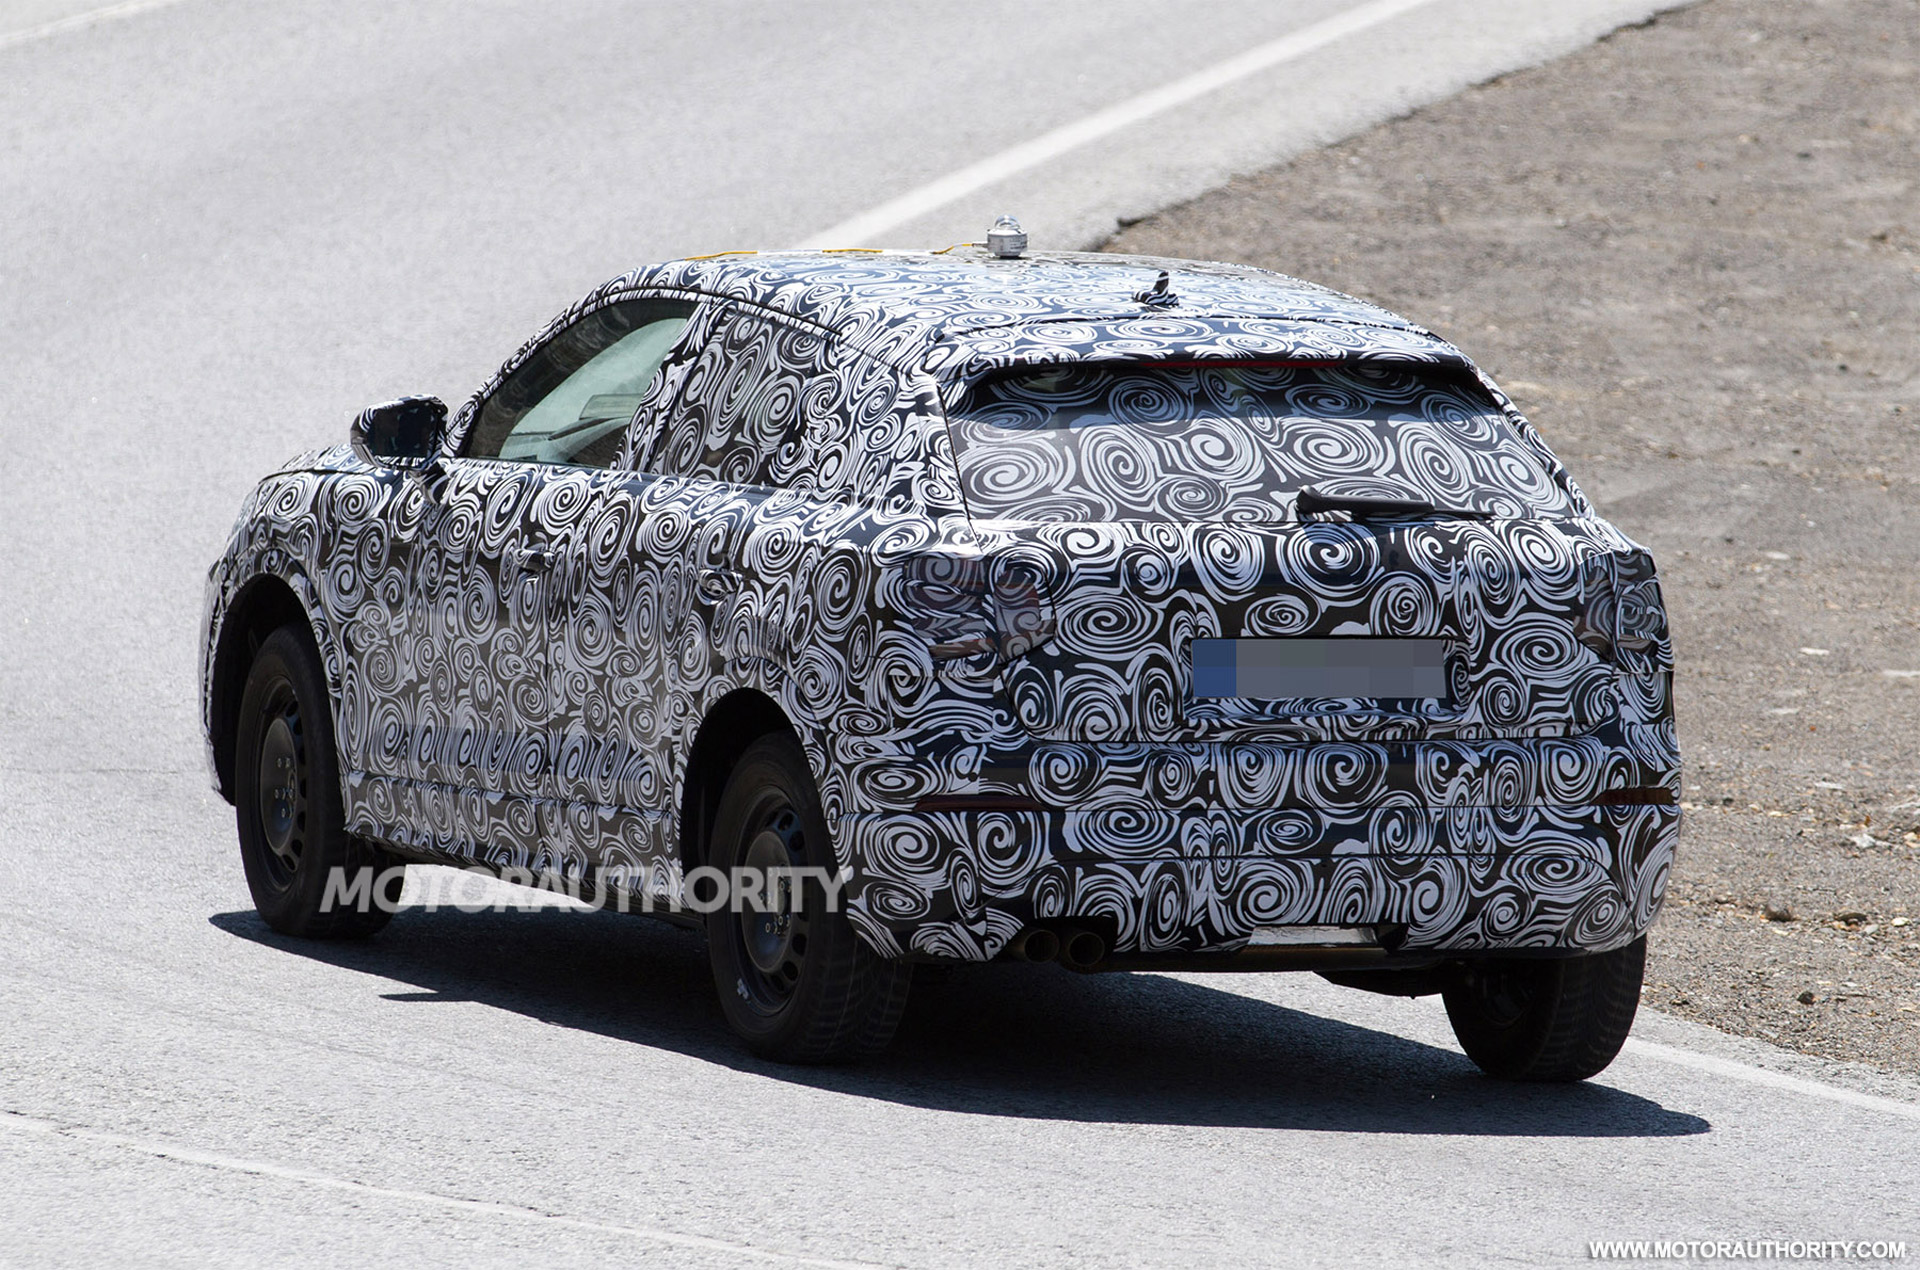 Spied AGAIN! Have A Look At The Exclusive PHOTOS Of The Brand New 2016 Audi Q1 7